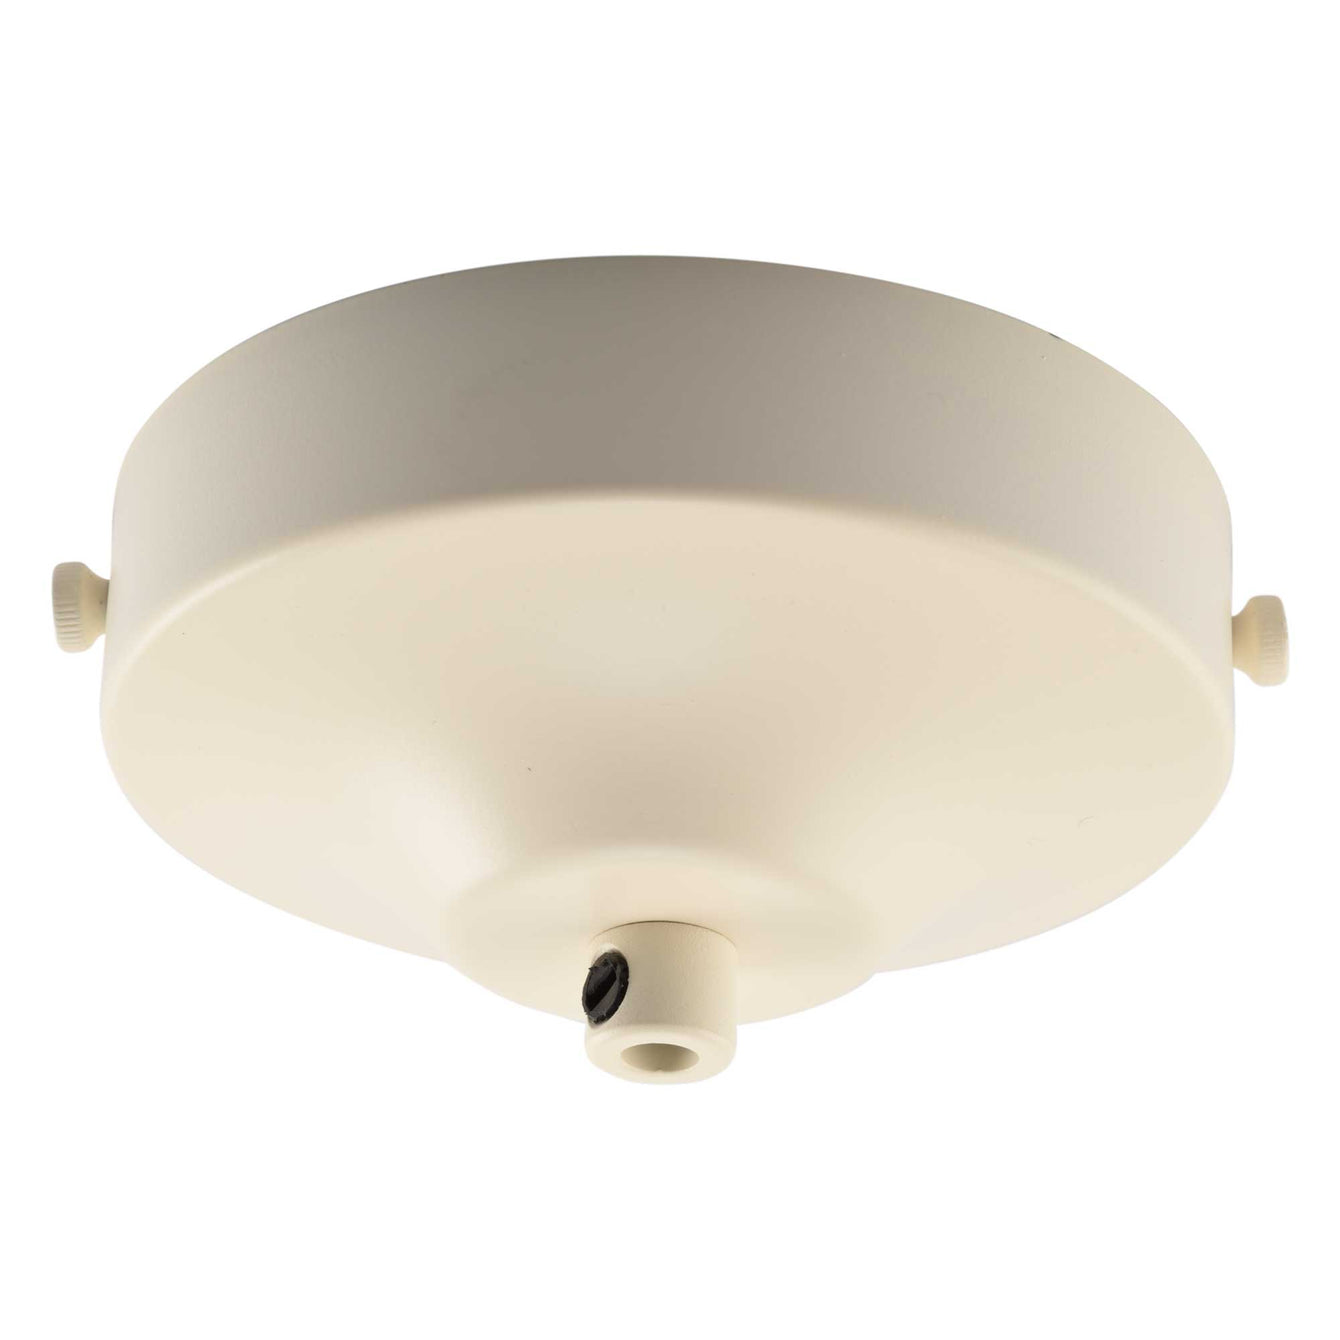 ElekTek 100mm Diameter Convex Ceiling Rose with Strap Bracket and Cord Grip Metallic Finishes Powder Coated Colours - Buy It Better Jet Black